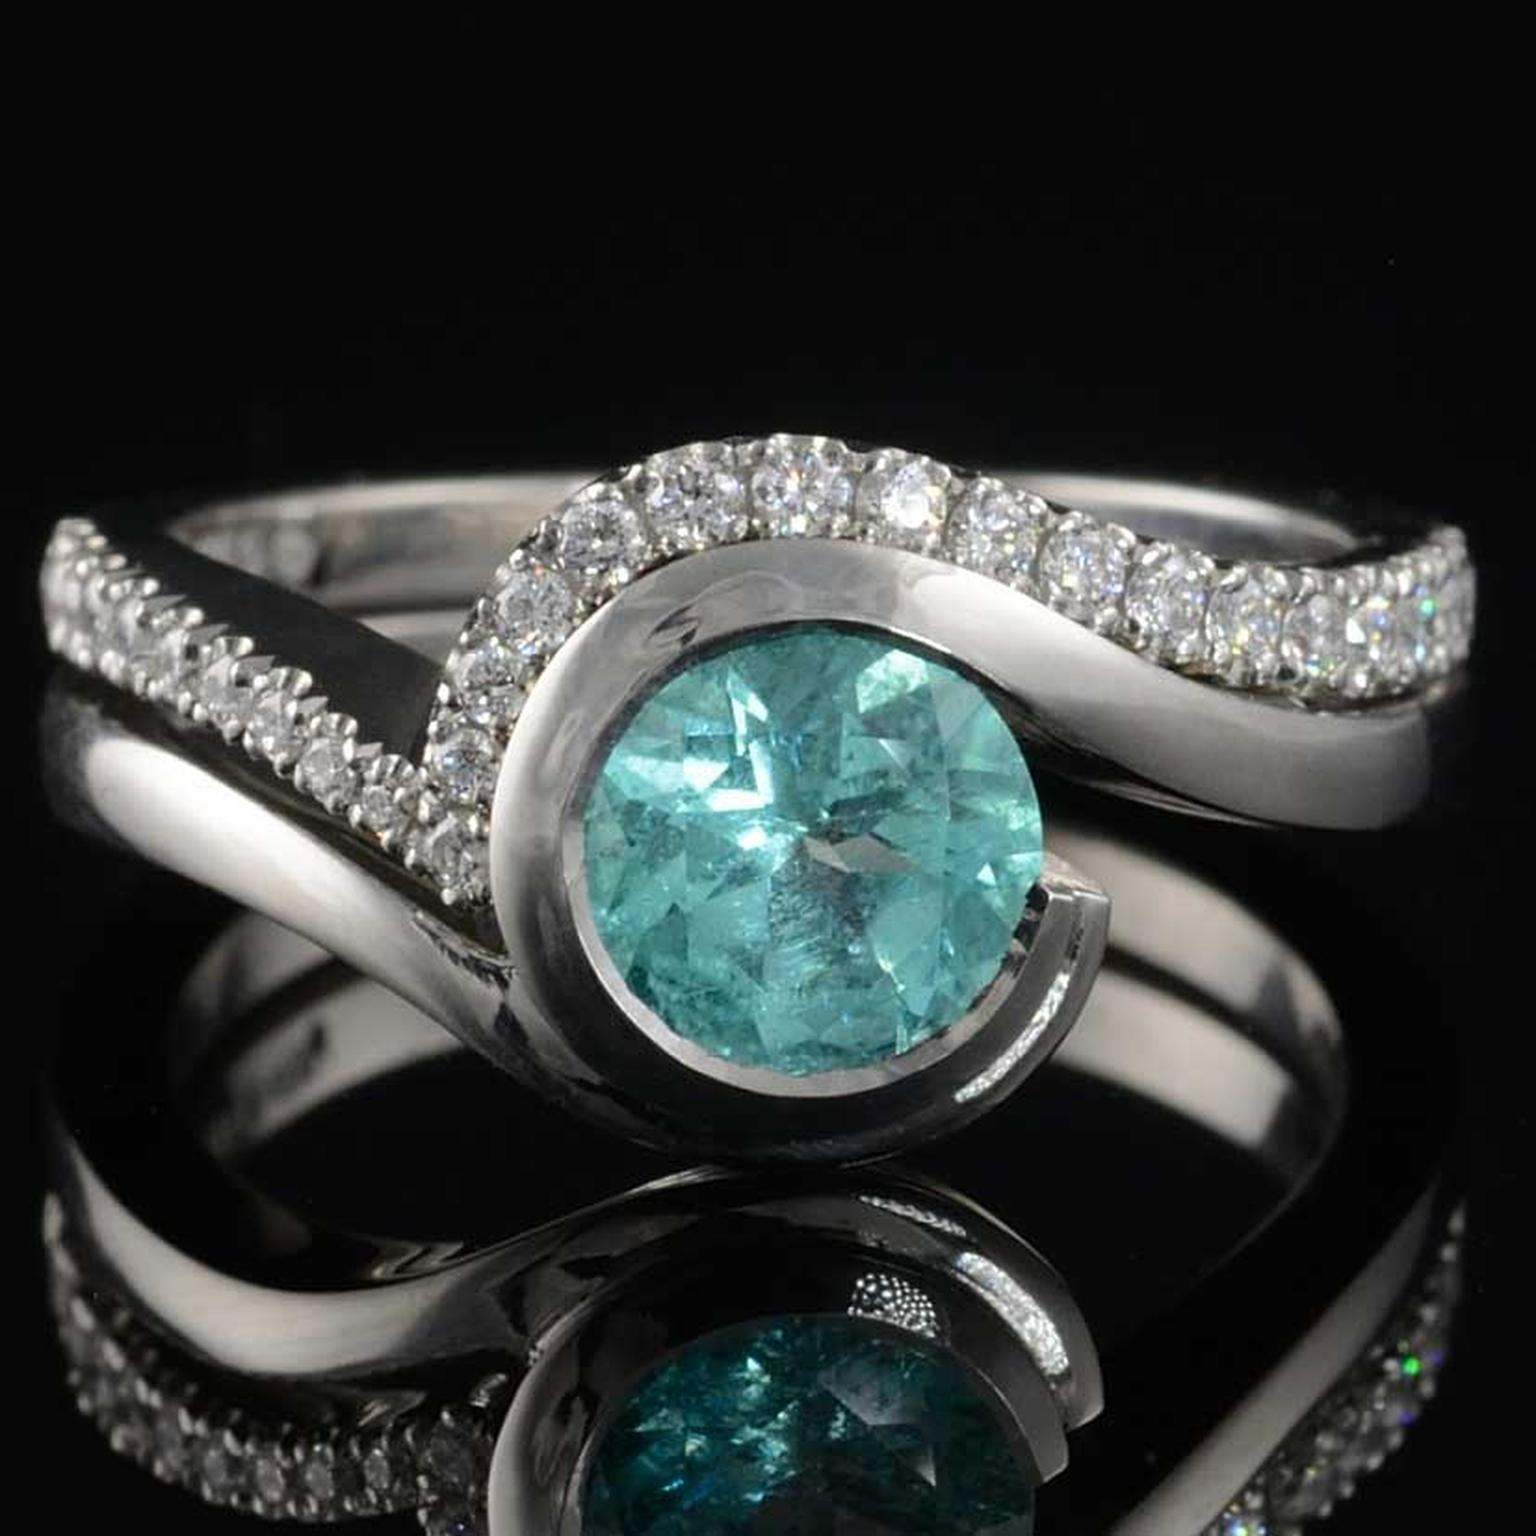 McCaul Goldsmiths Paraiba tourmaline engagement ring with matching diamond wedding band